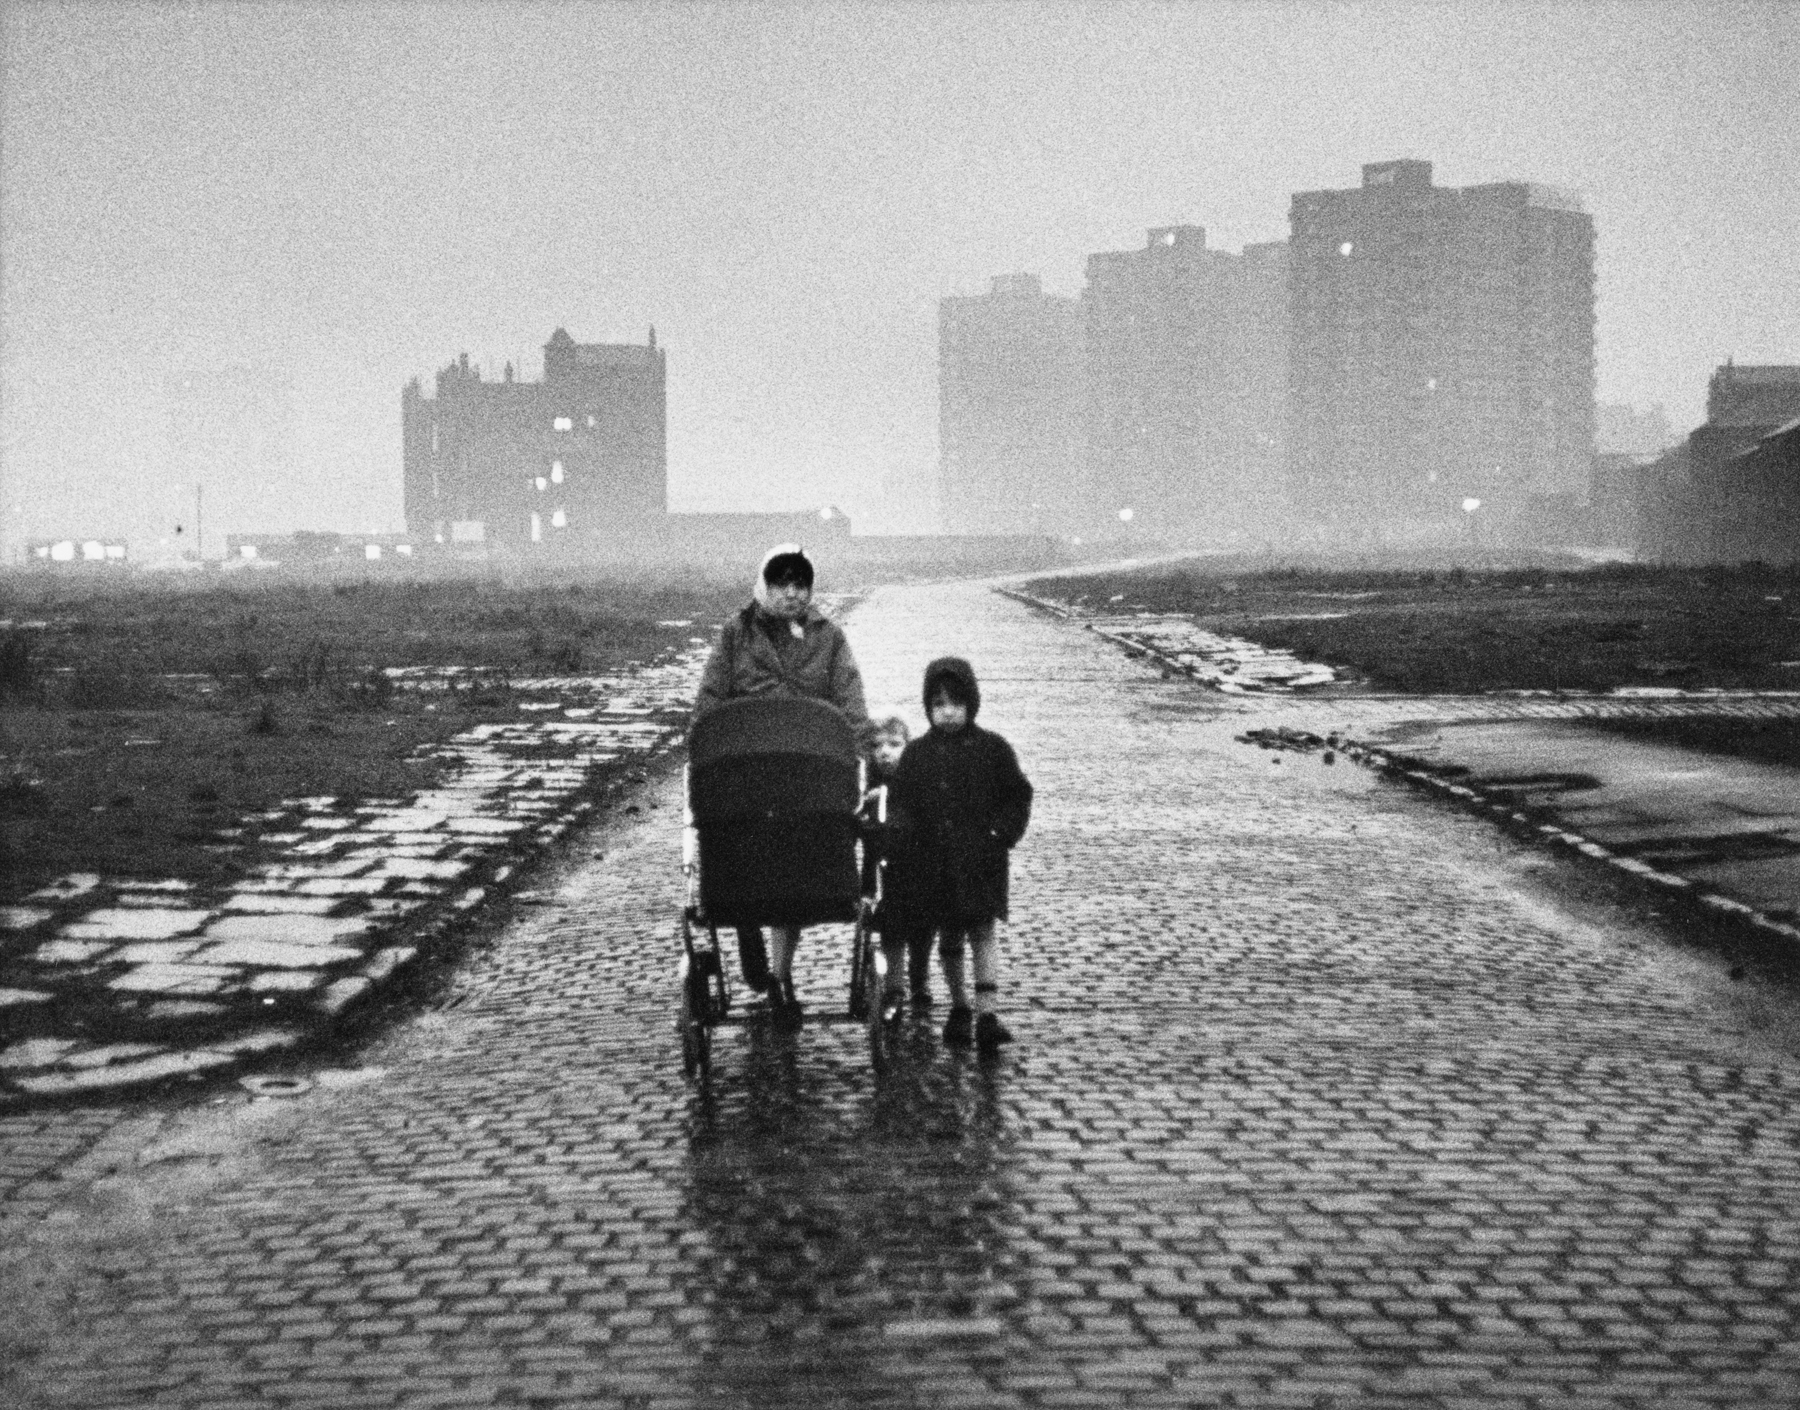 Salford 1964 © Estate of Shirley Baker. Courtesy of The Photographers' Gallery